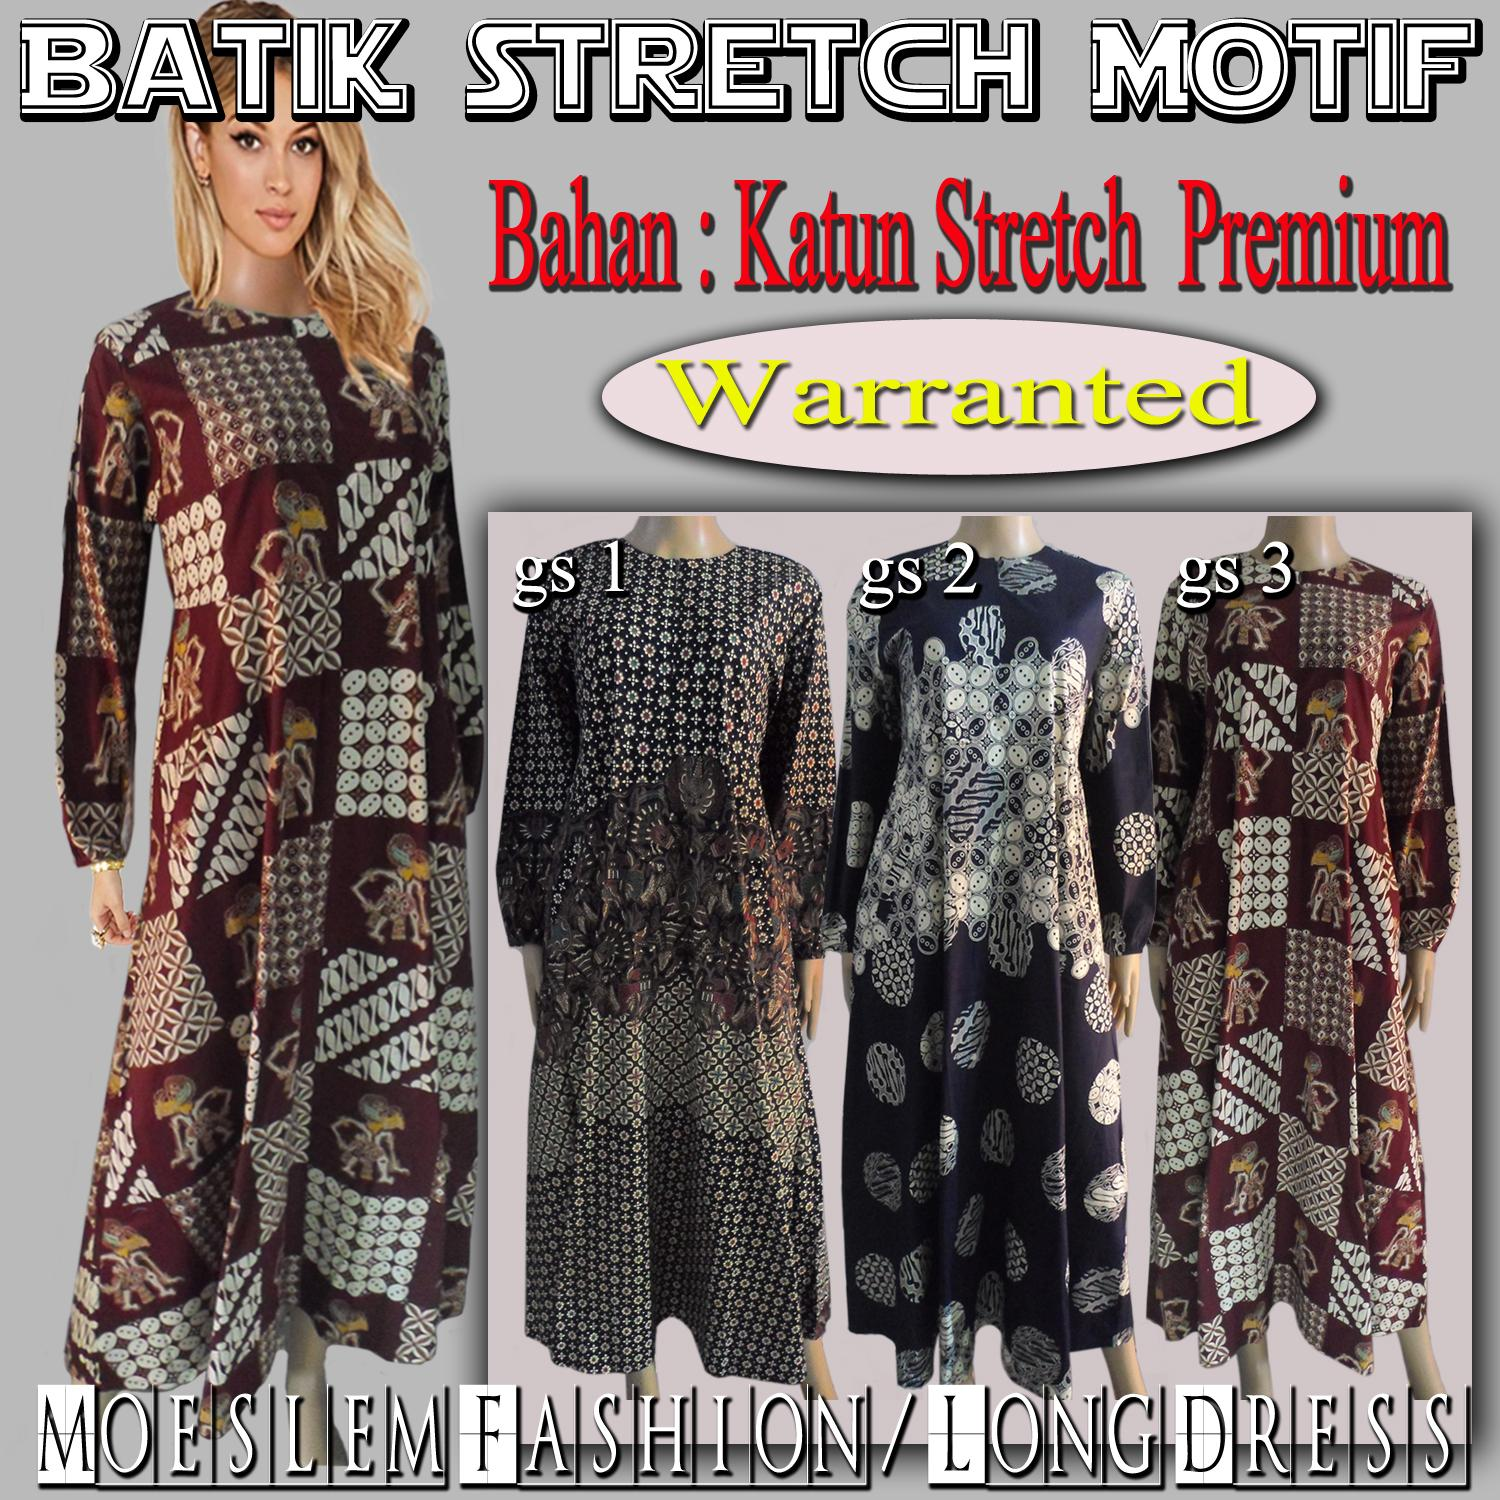 Gamis Batik / Long Dress Batik / Terusan Batik - Batik Stretch Premium Motif - GS2